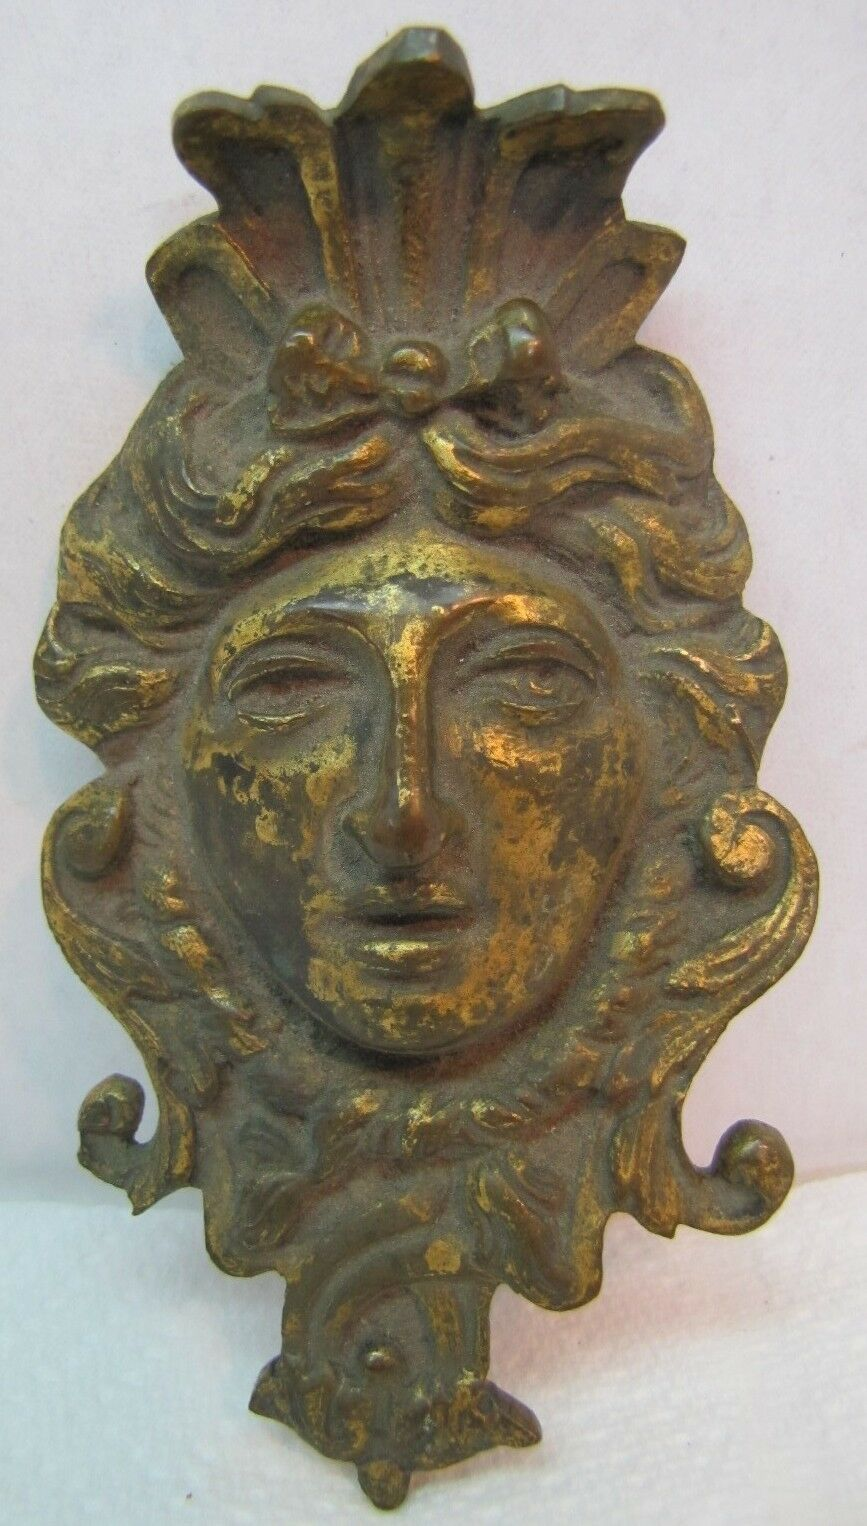 19c Antique Bronze Figural Face Hardware Ornate High Relief Architectural